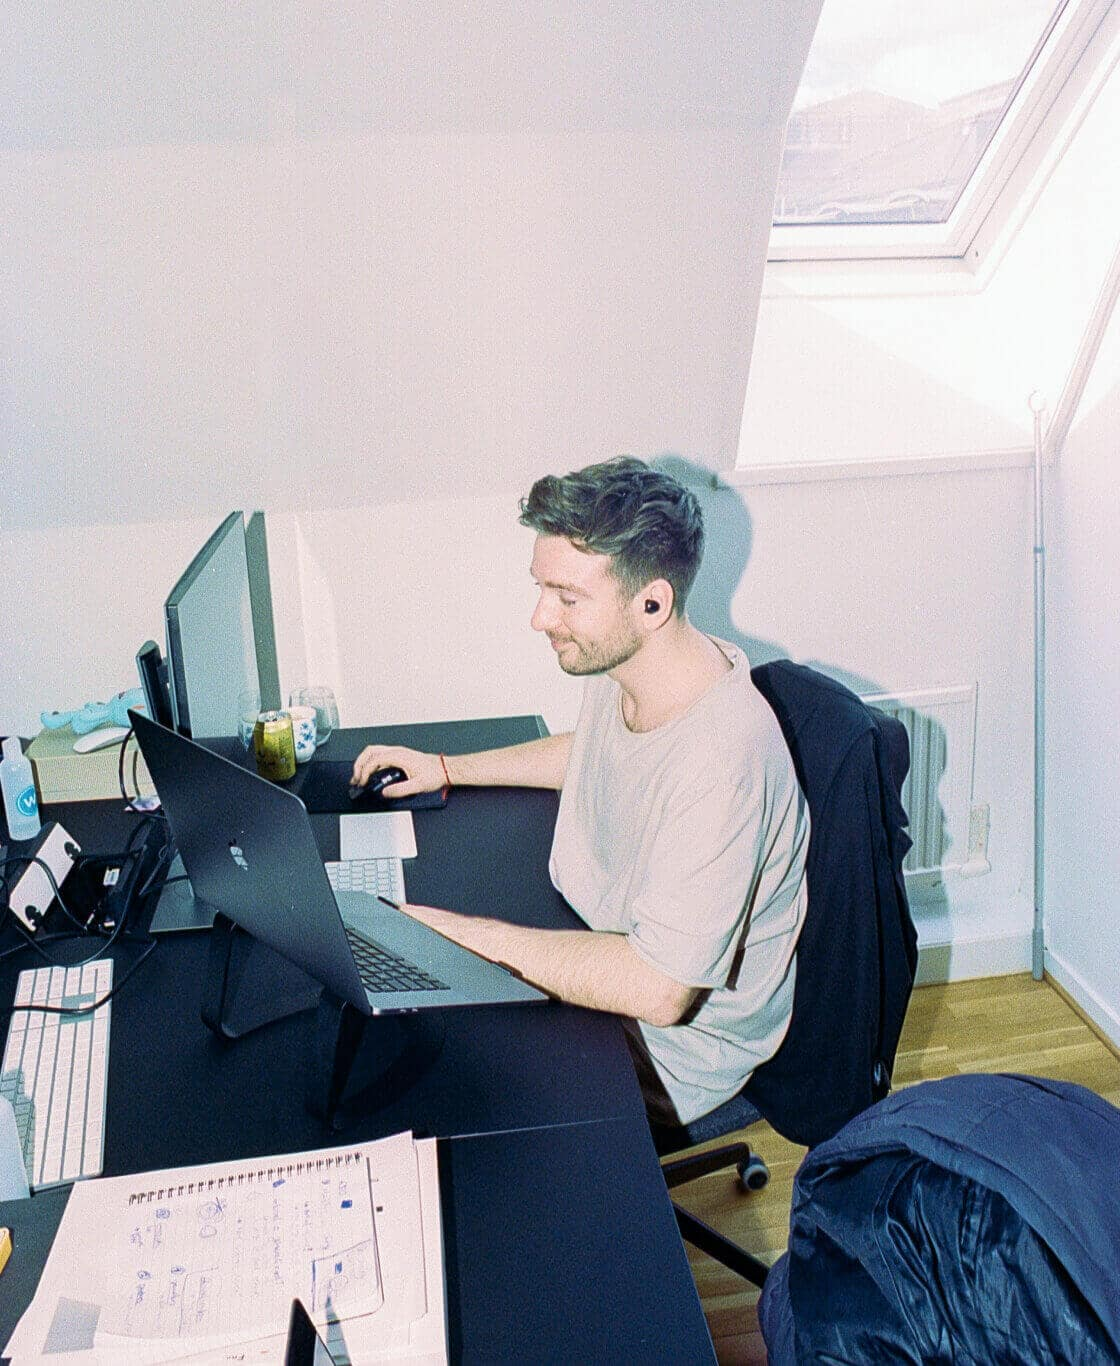 One employee at Worksome working